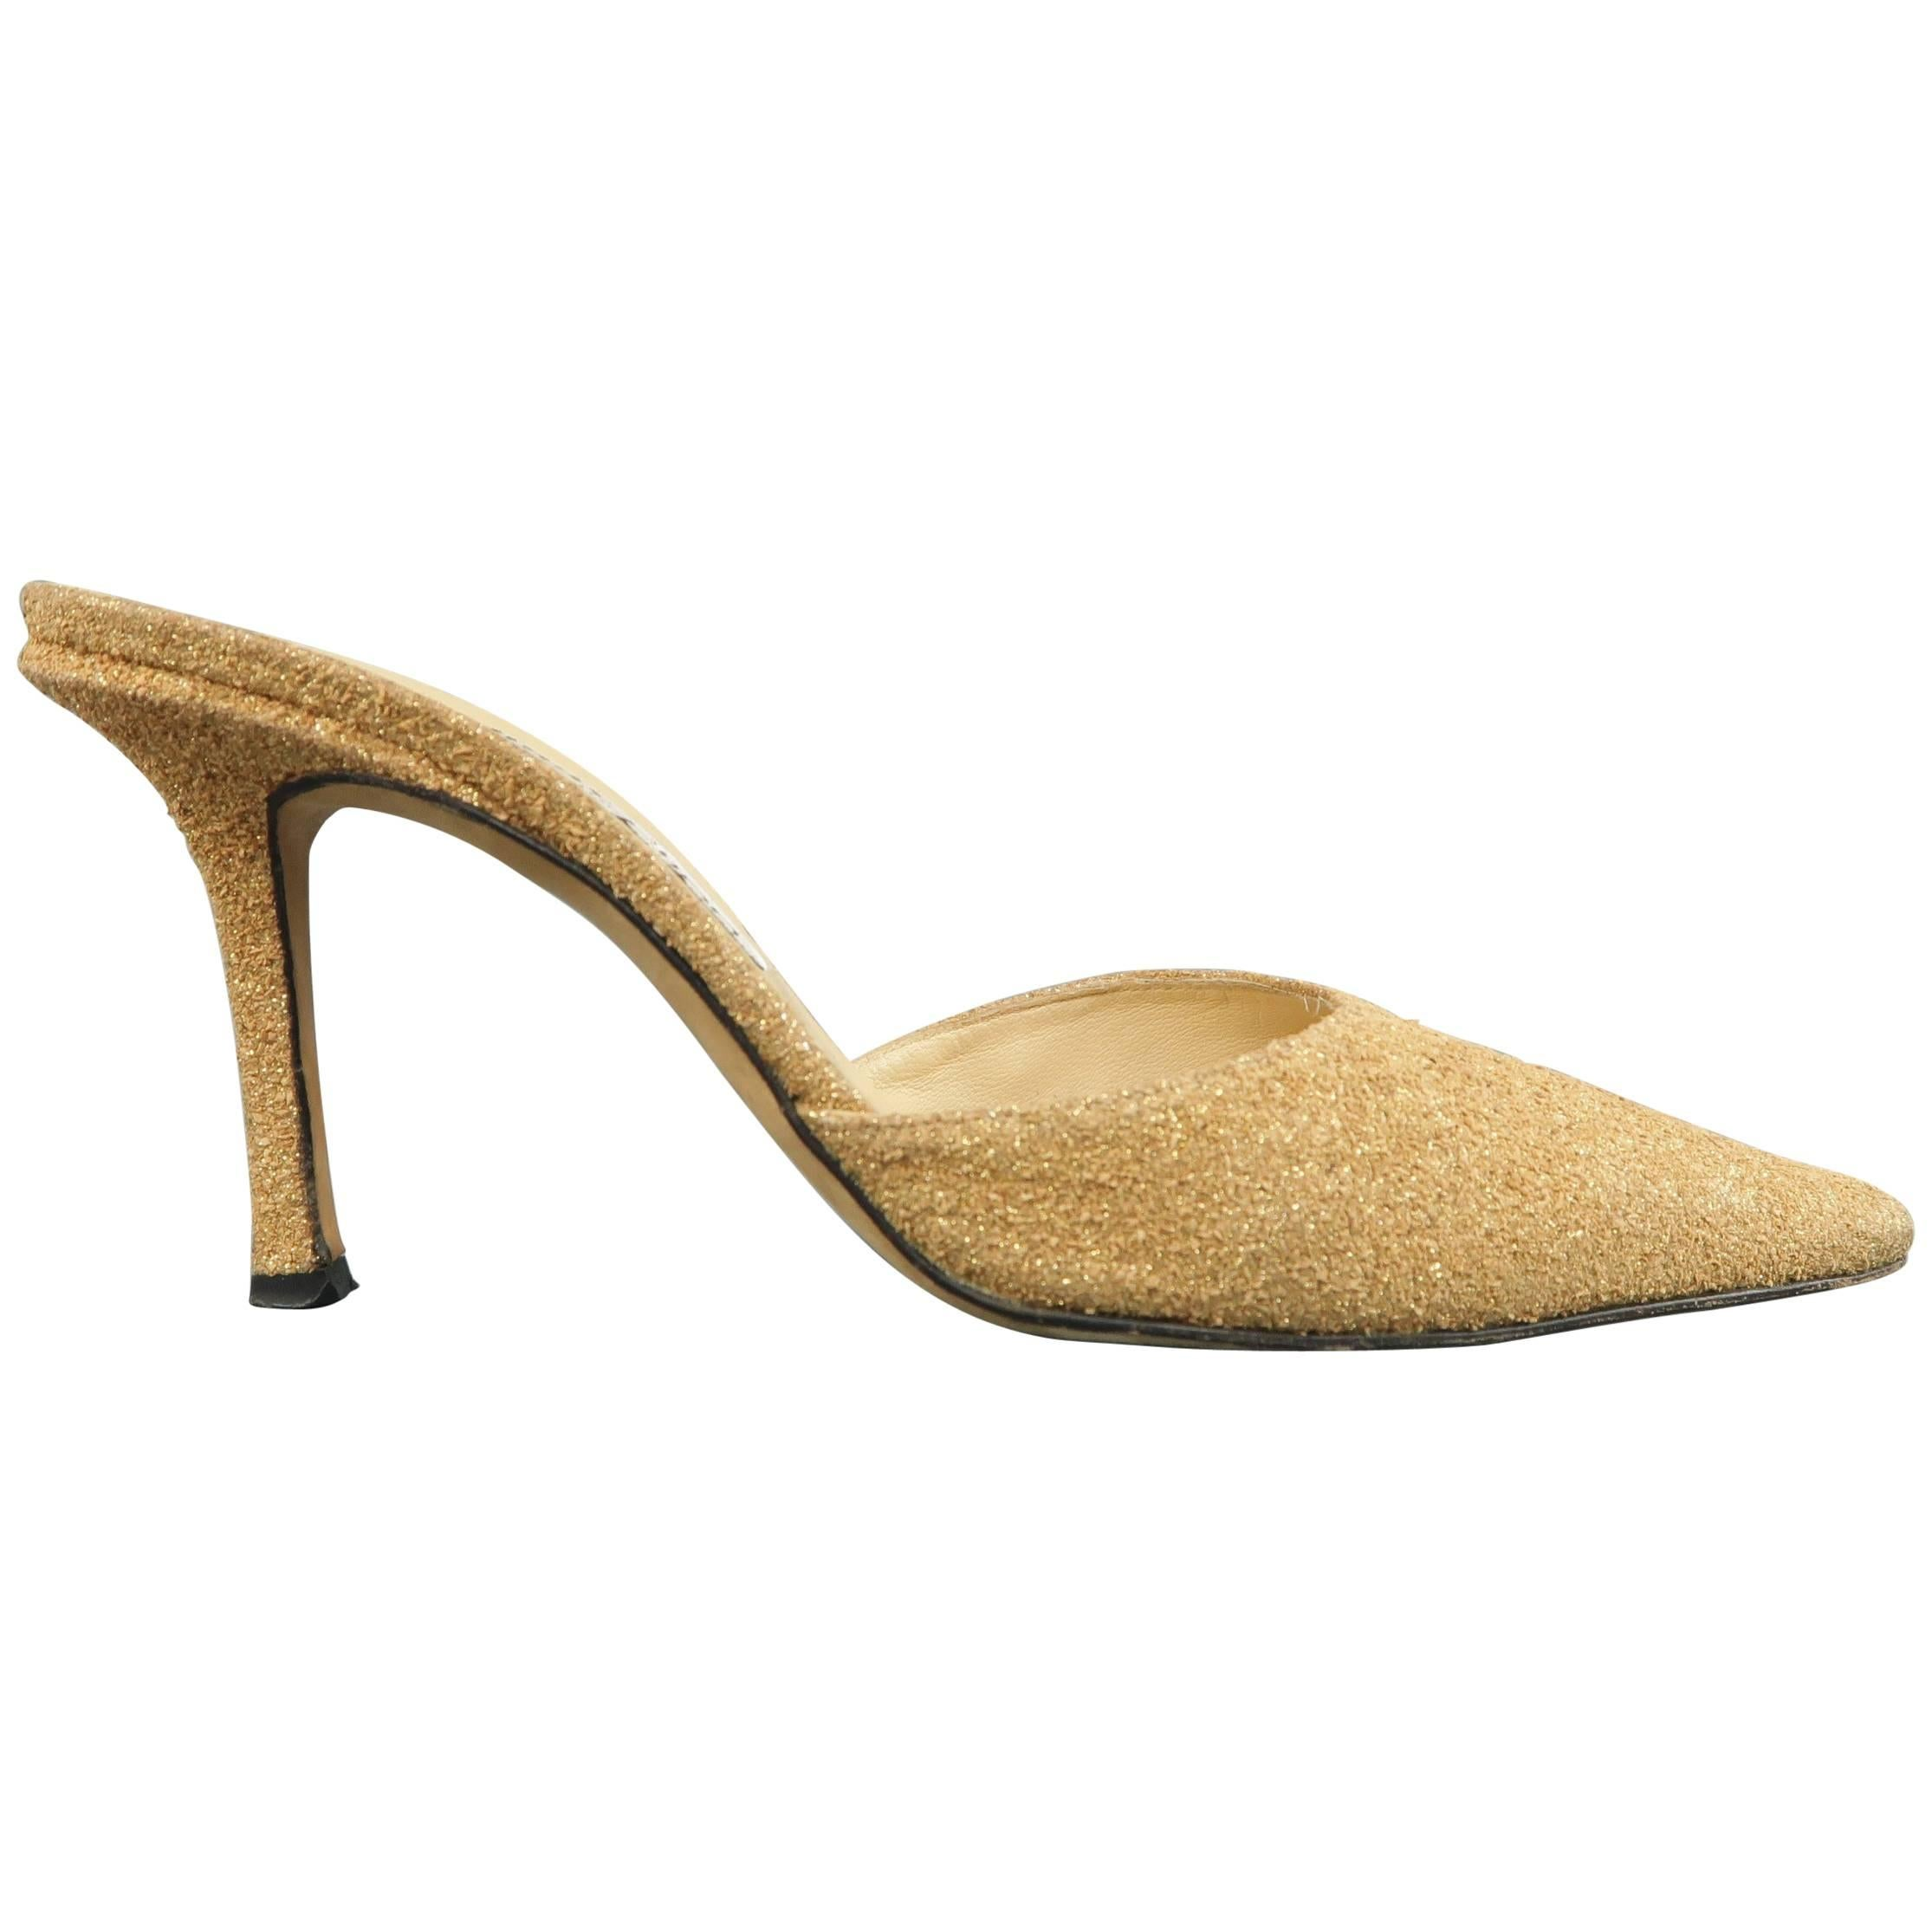 0e15117d7f JIMMY CHOO Size 10 Gold Glitter Cork Textured Leather Mule at 1stdibs